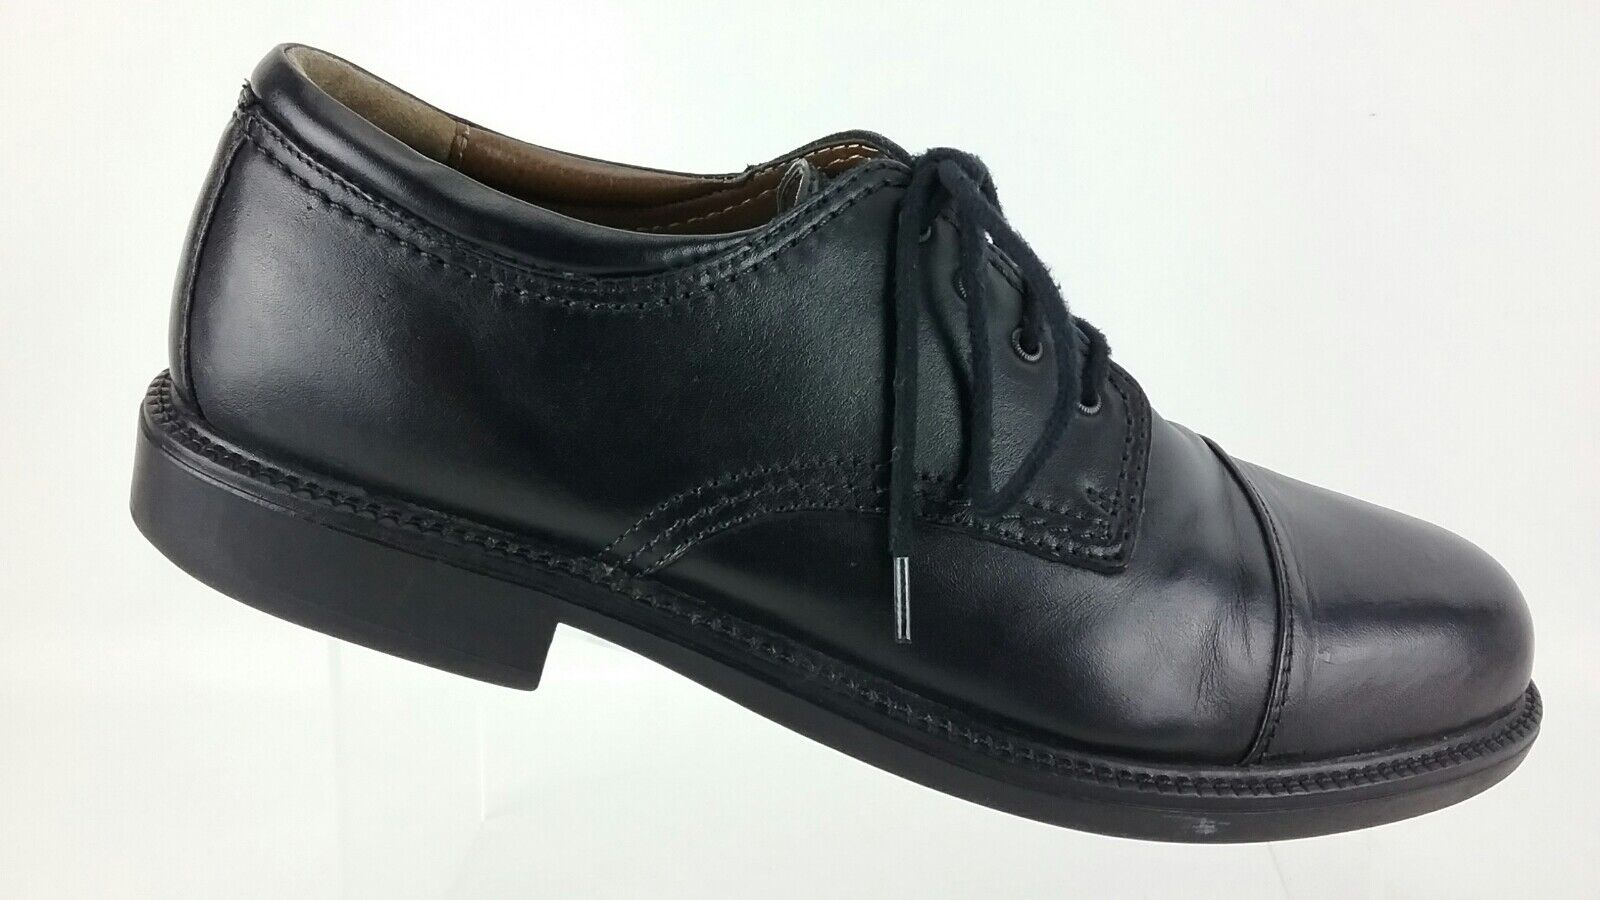 Dockers Cap Toe Oxford Black Leather Lace Up Mens 12 M Dress Casual shoes R7S7